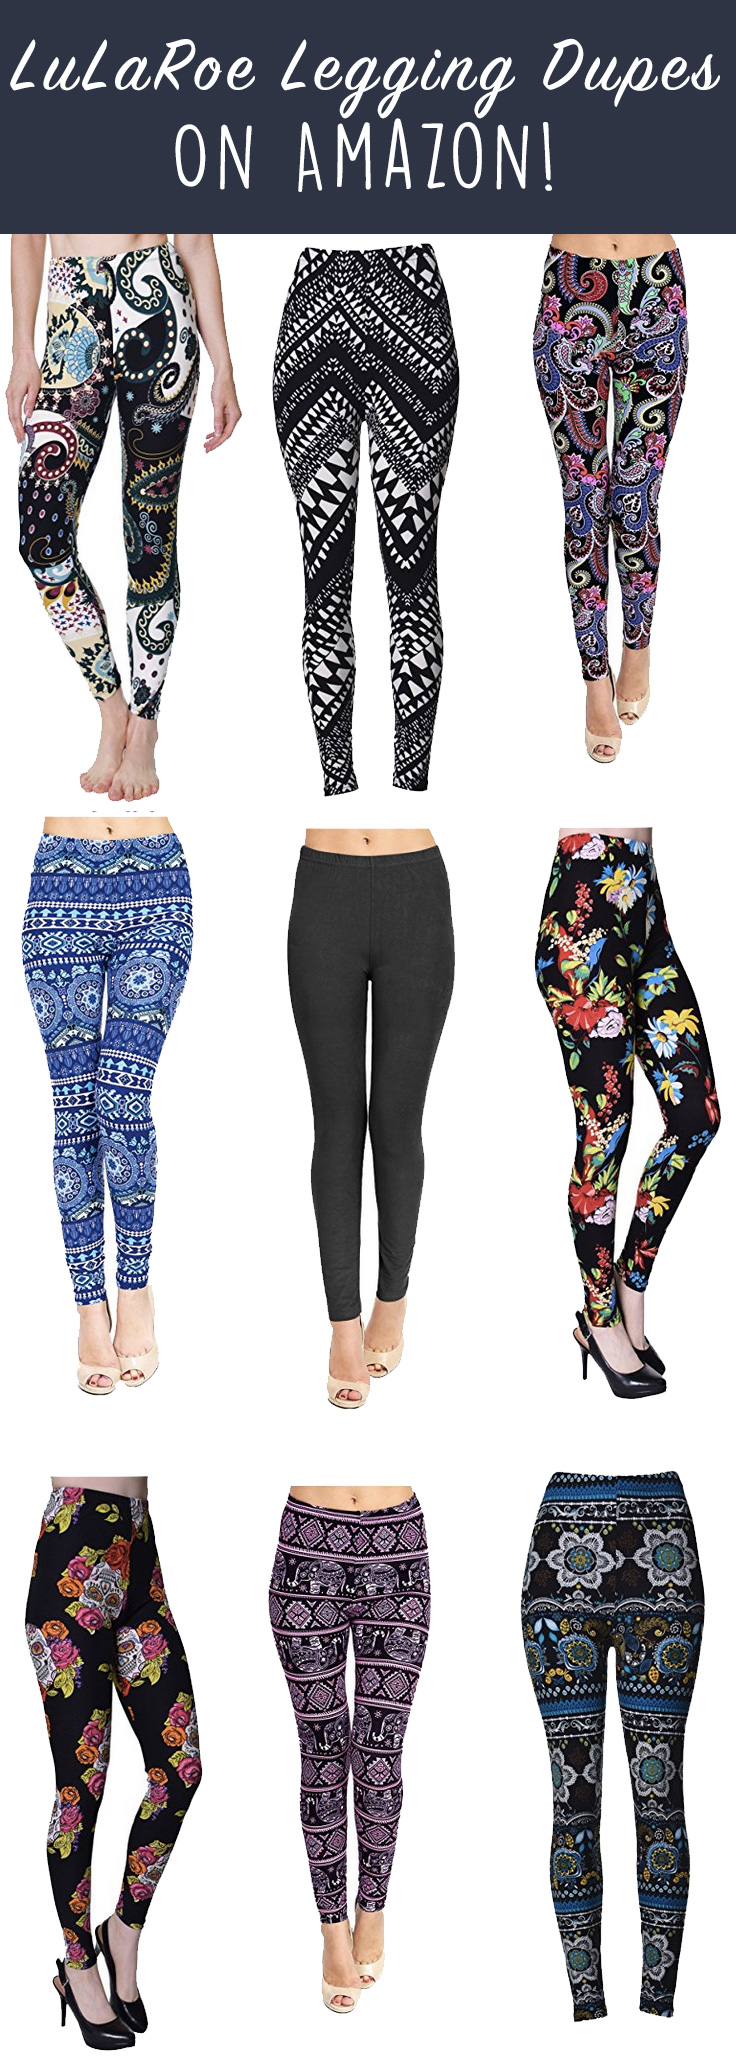 da7fbf8f0e127 So finding a dupe for something that seems a tad expensive is always fun!  And I wasn't even looking for a LuLaRoe legging dupe, they sort of just  found me!